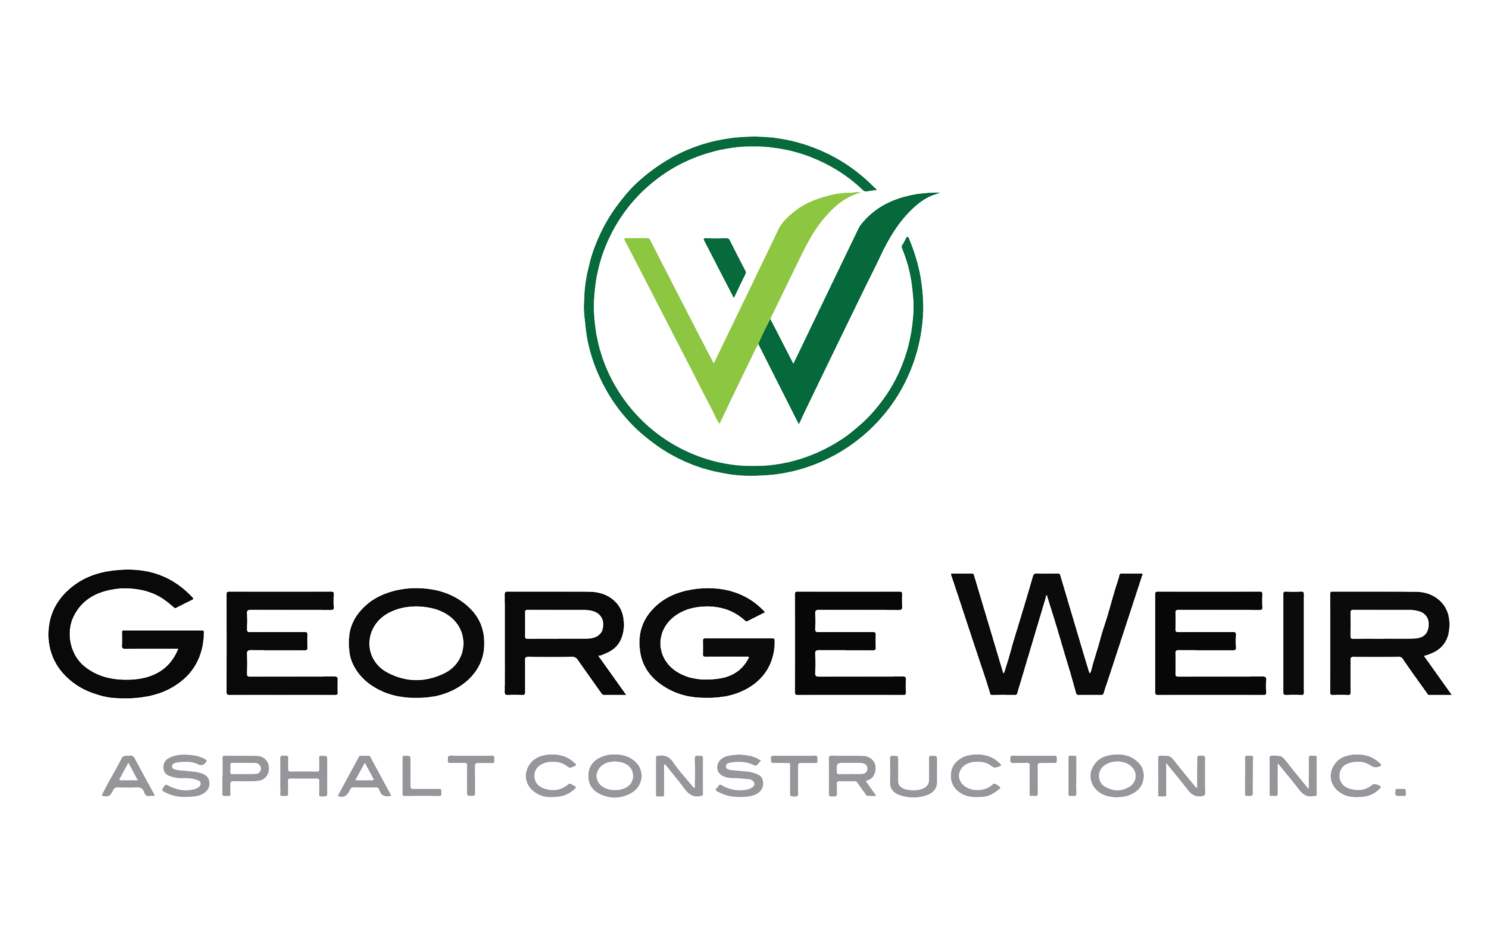 George Weir Asphalt Construction